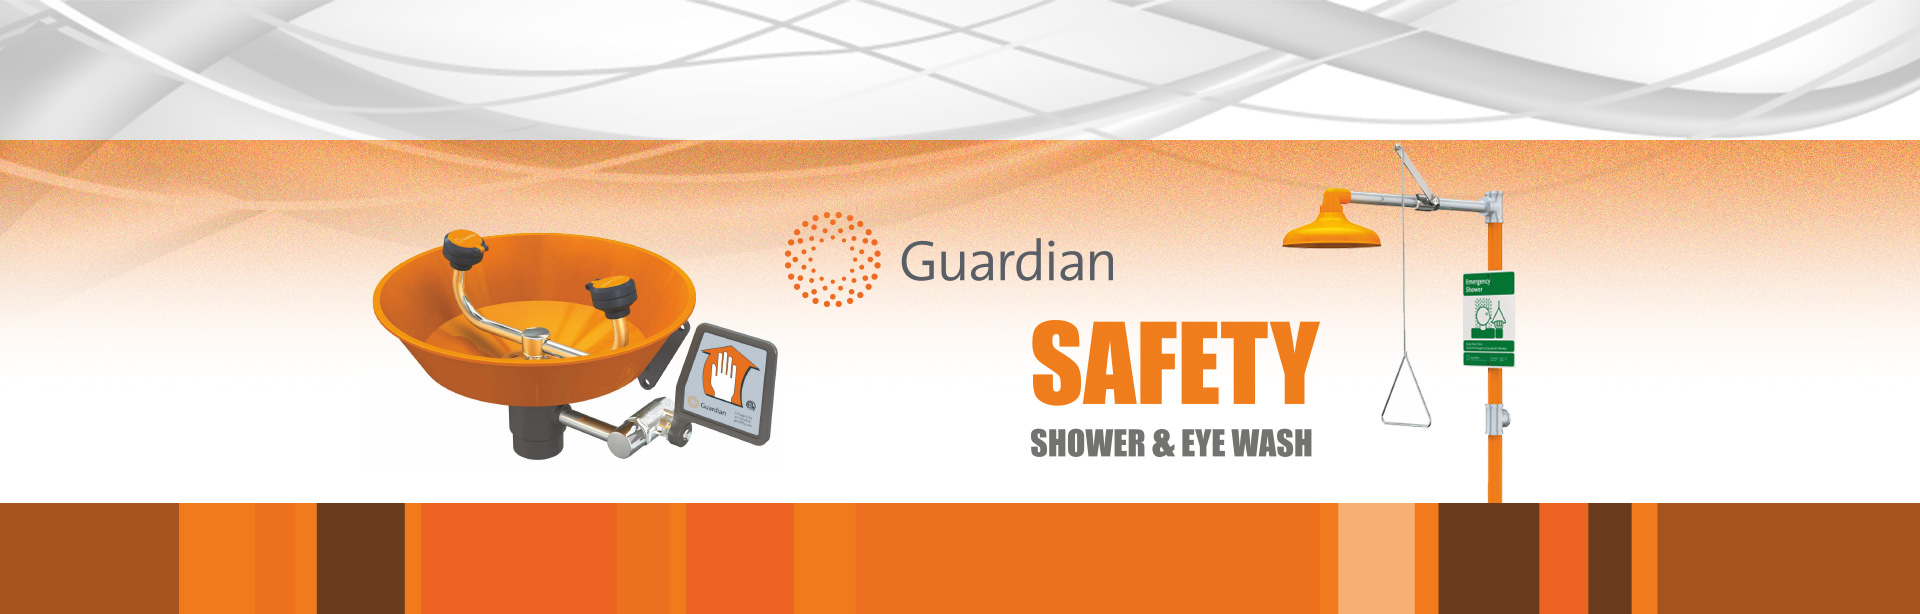 SGM deals in Guardian safety shower & eye wash station.